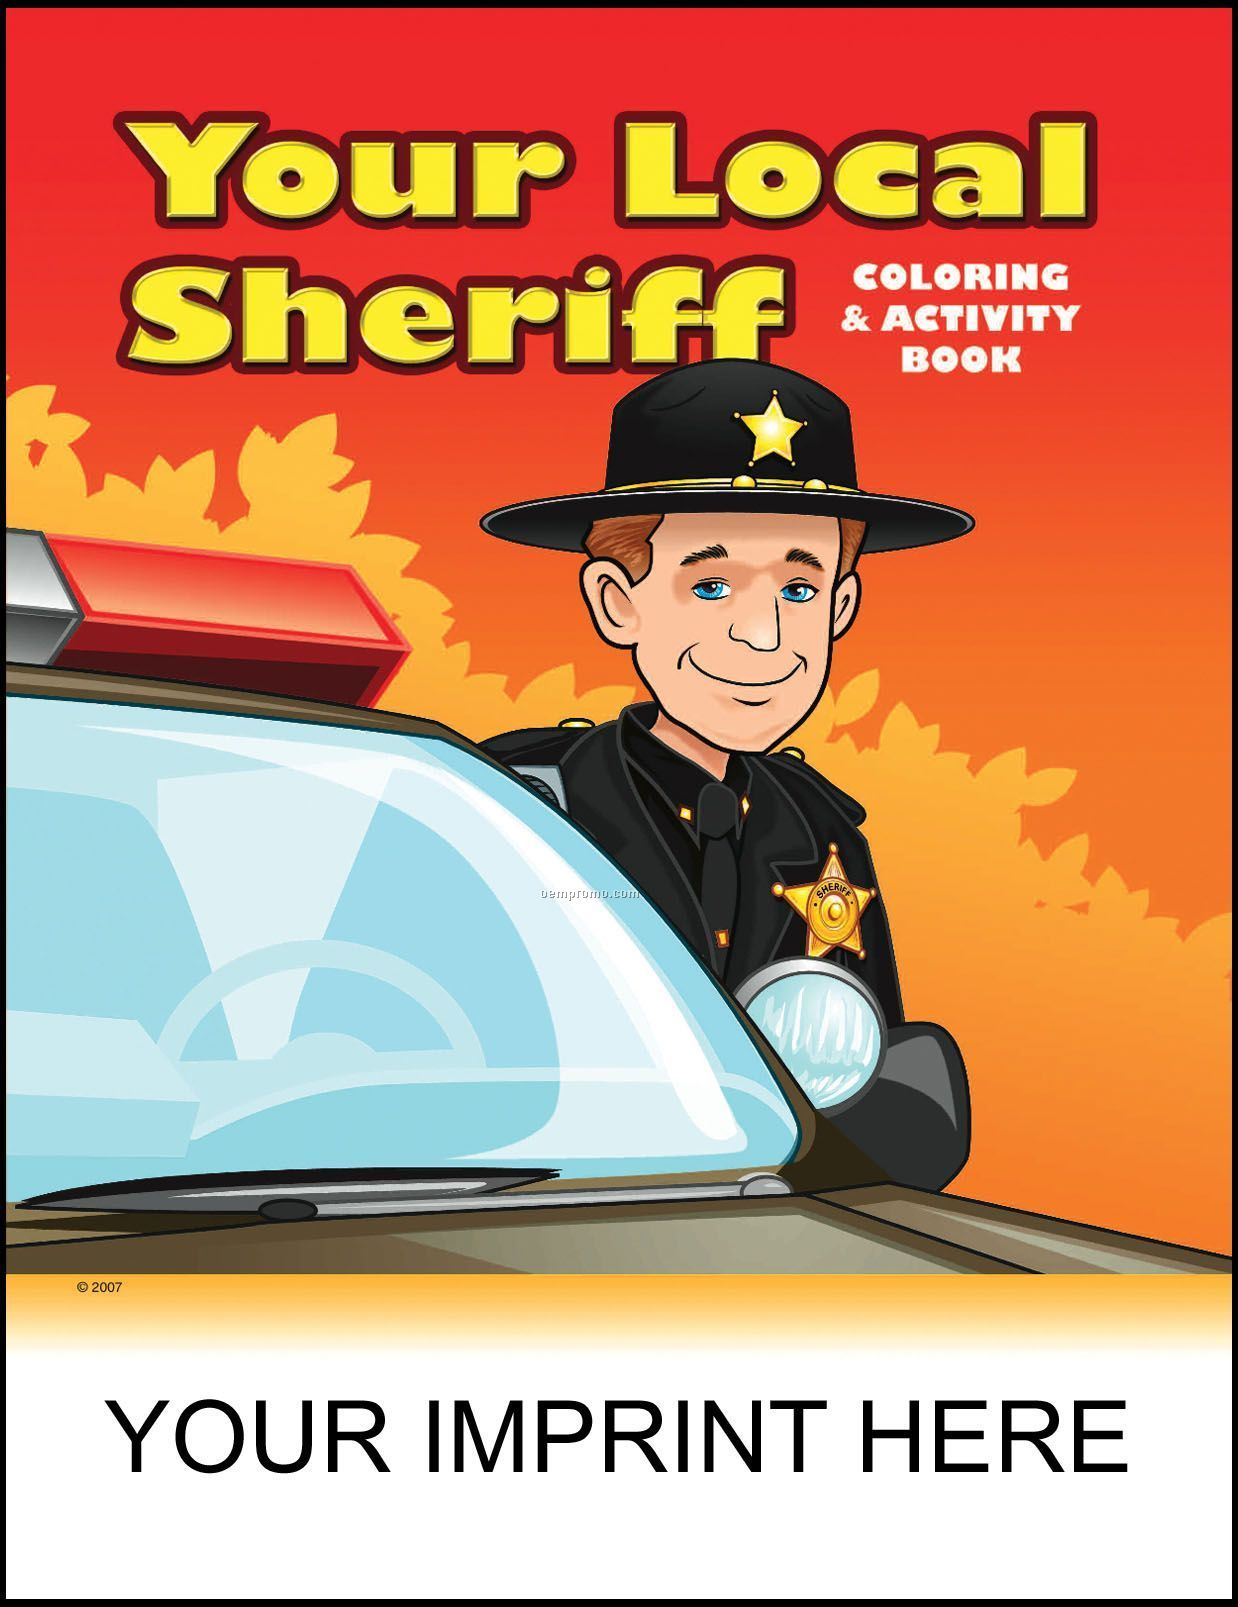 Your Local Sheriff Coloring & Activity Book